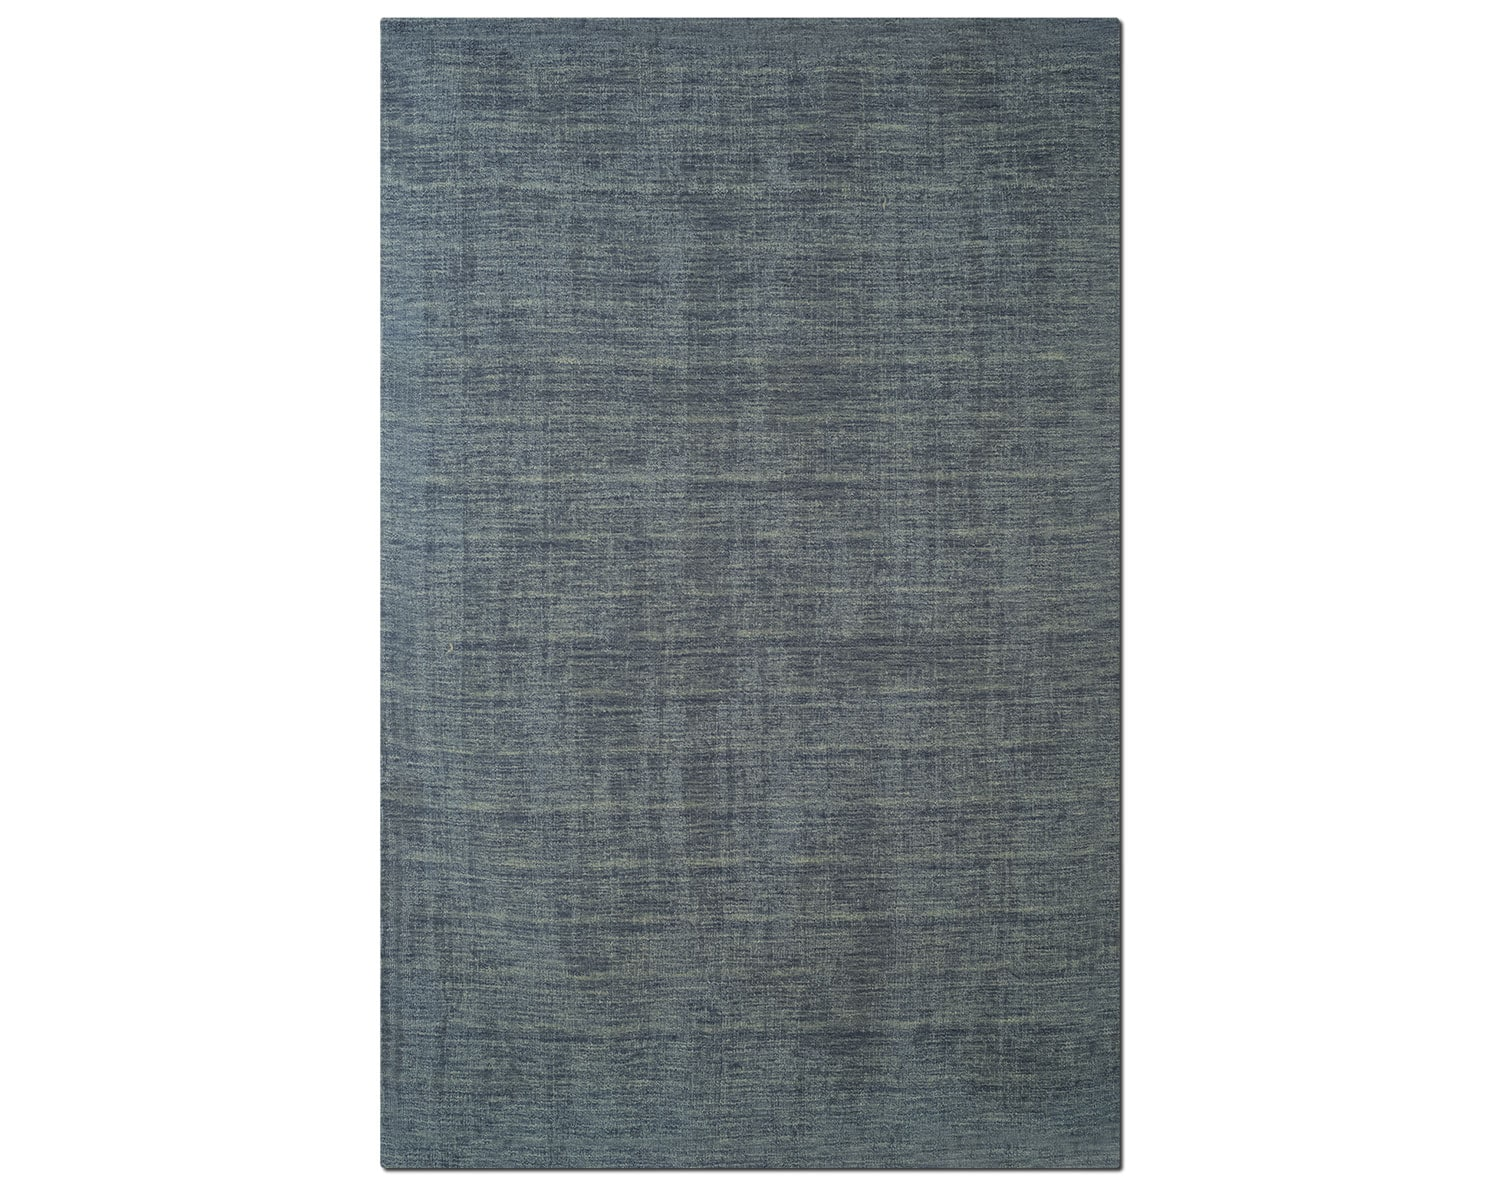 The Basics Collection - Gray and Blue